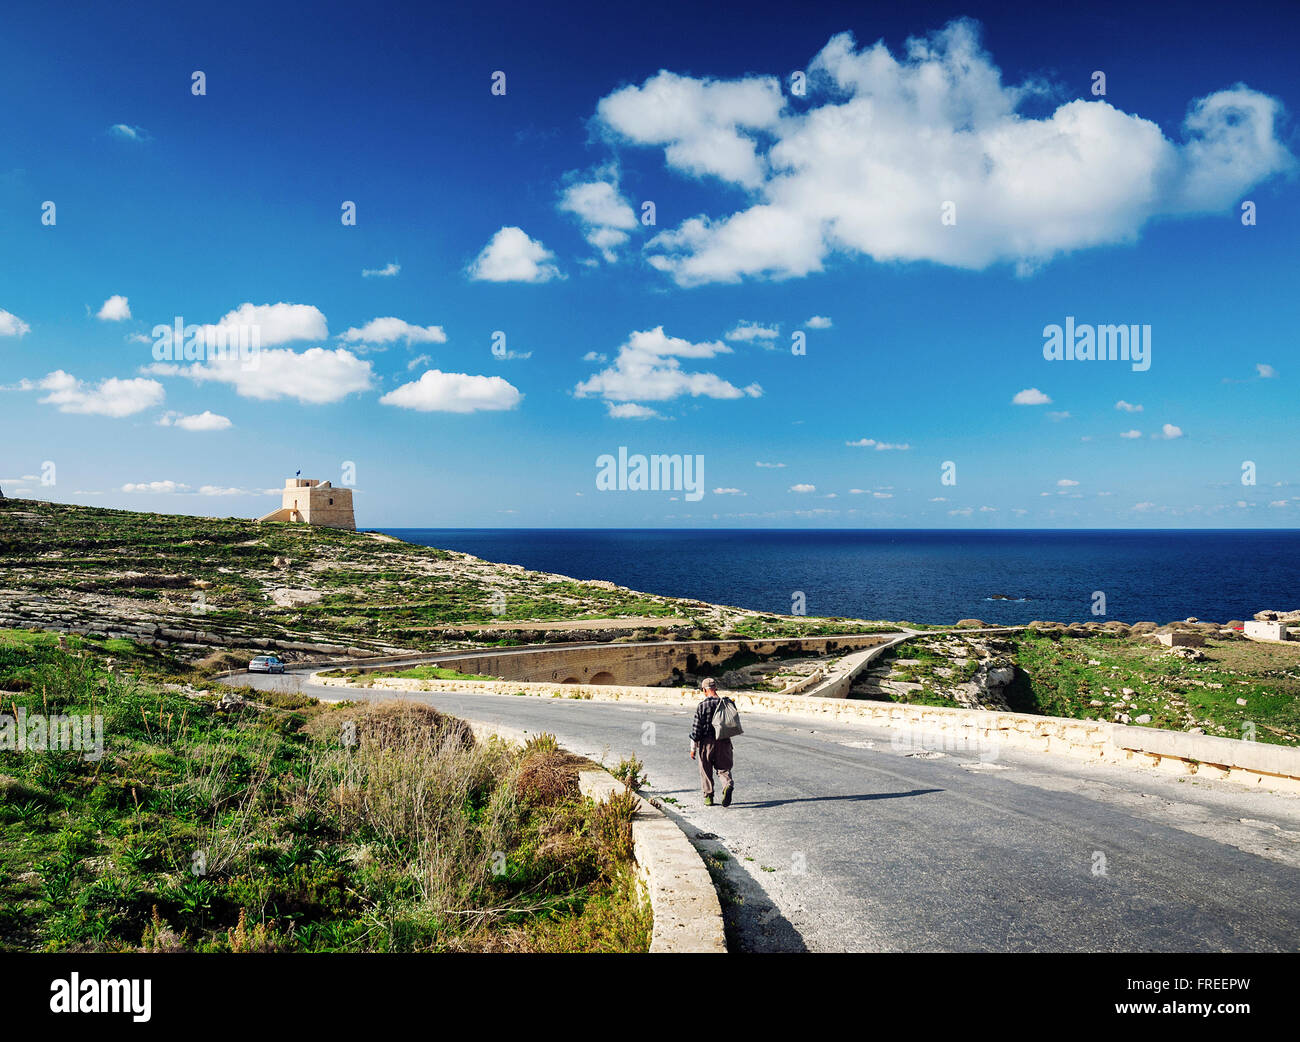 shepherd on road near fort and mediterranean coast view of gozo island in malta - Stock Image